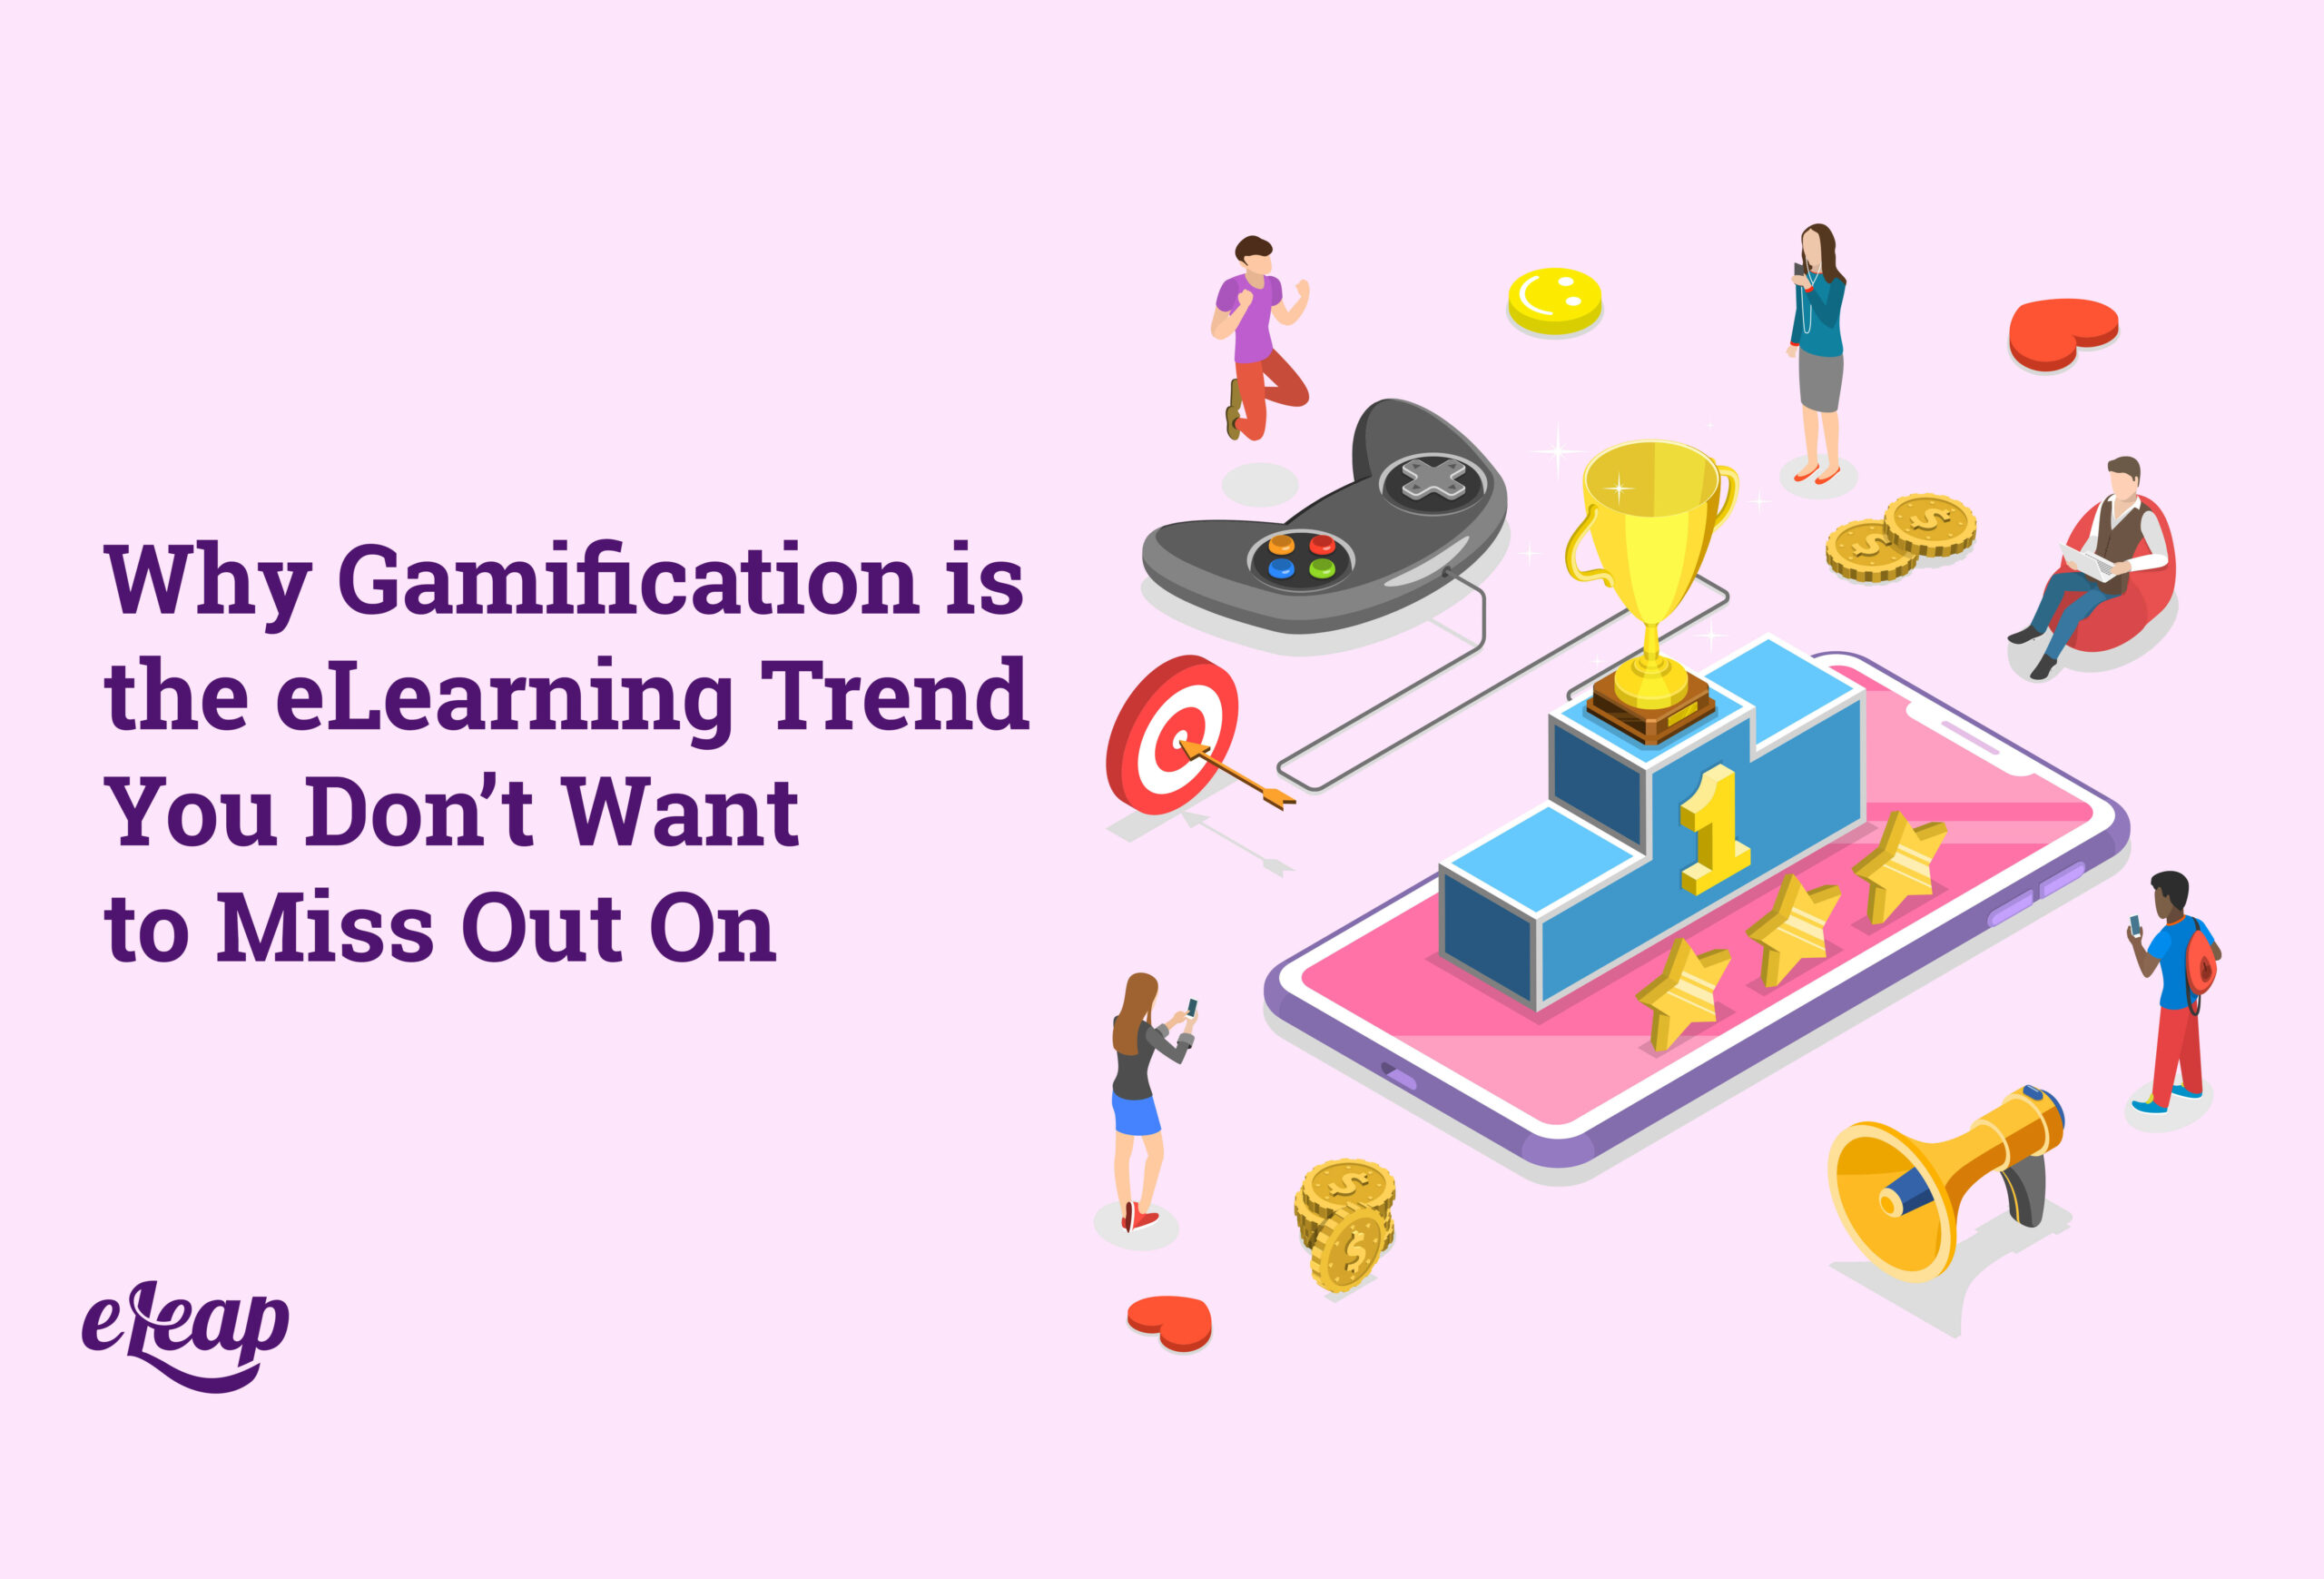 Why Gamification is the eLearning Trend You Don't Want to Miss Out On